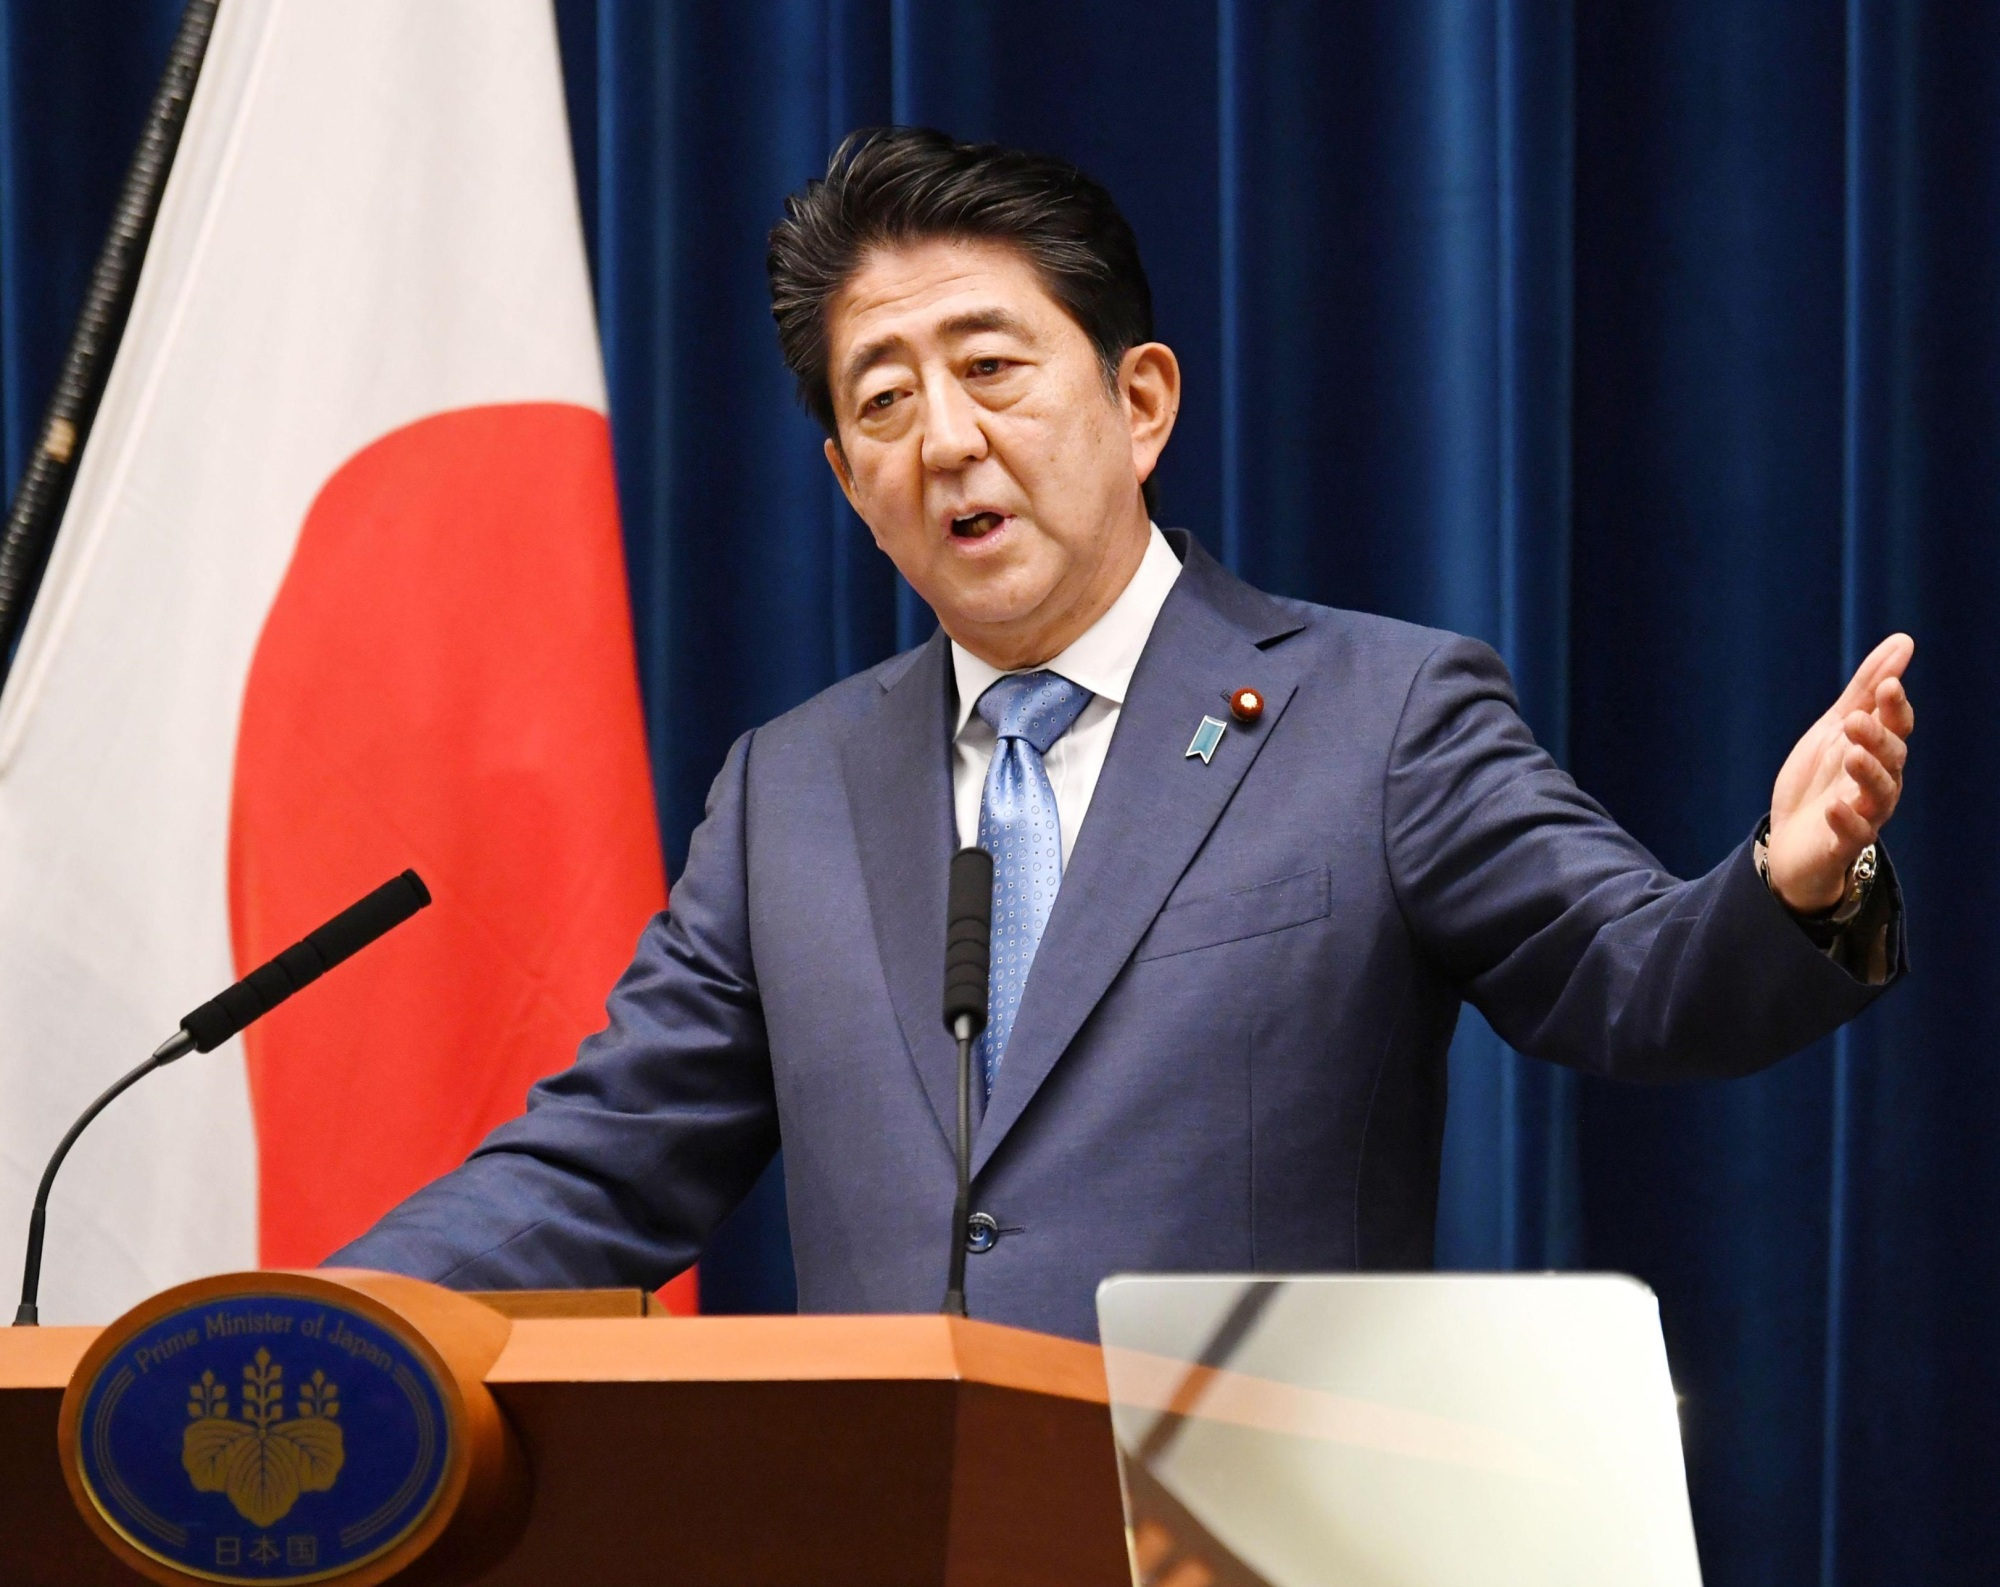 Prime Minister Shinzo Abe holds a news conference Monday evening at the Prime Minister's Office in Tokyo to mark the end of the ordinary Diet session on Sunday. | KYODO